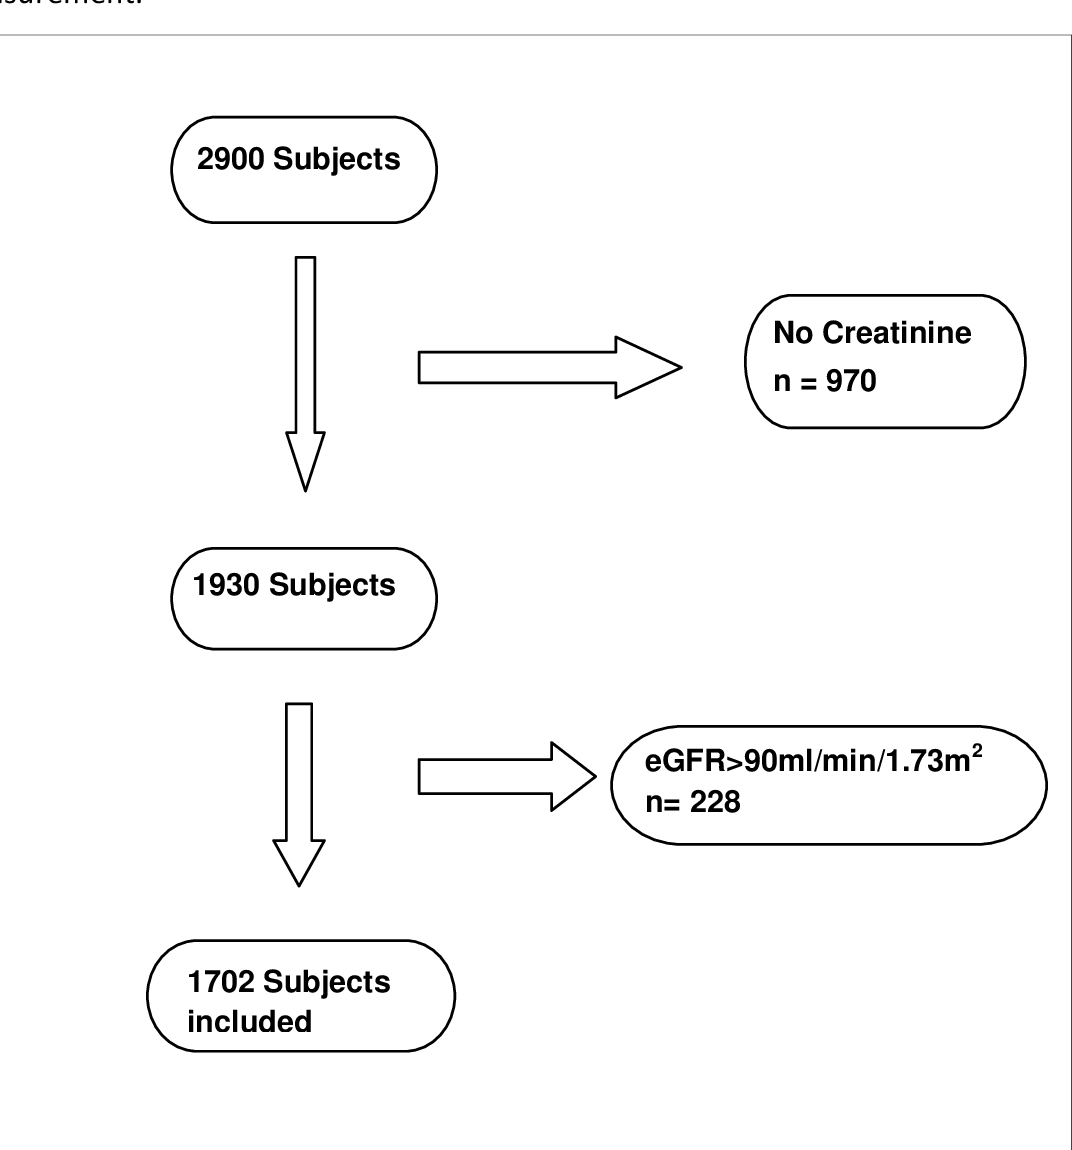 Figure 2.1: Study Population, 1702 subjects with available DXA and creatinine measurement.